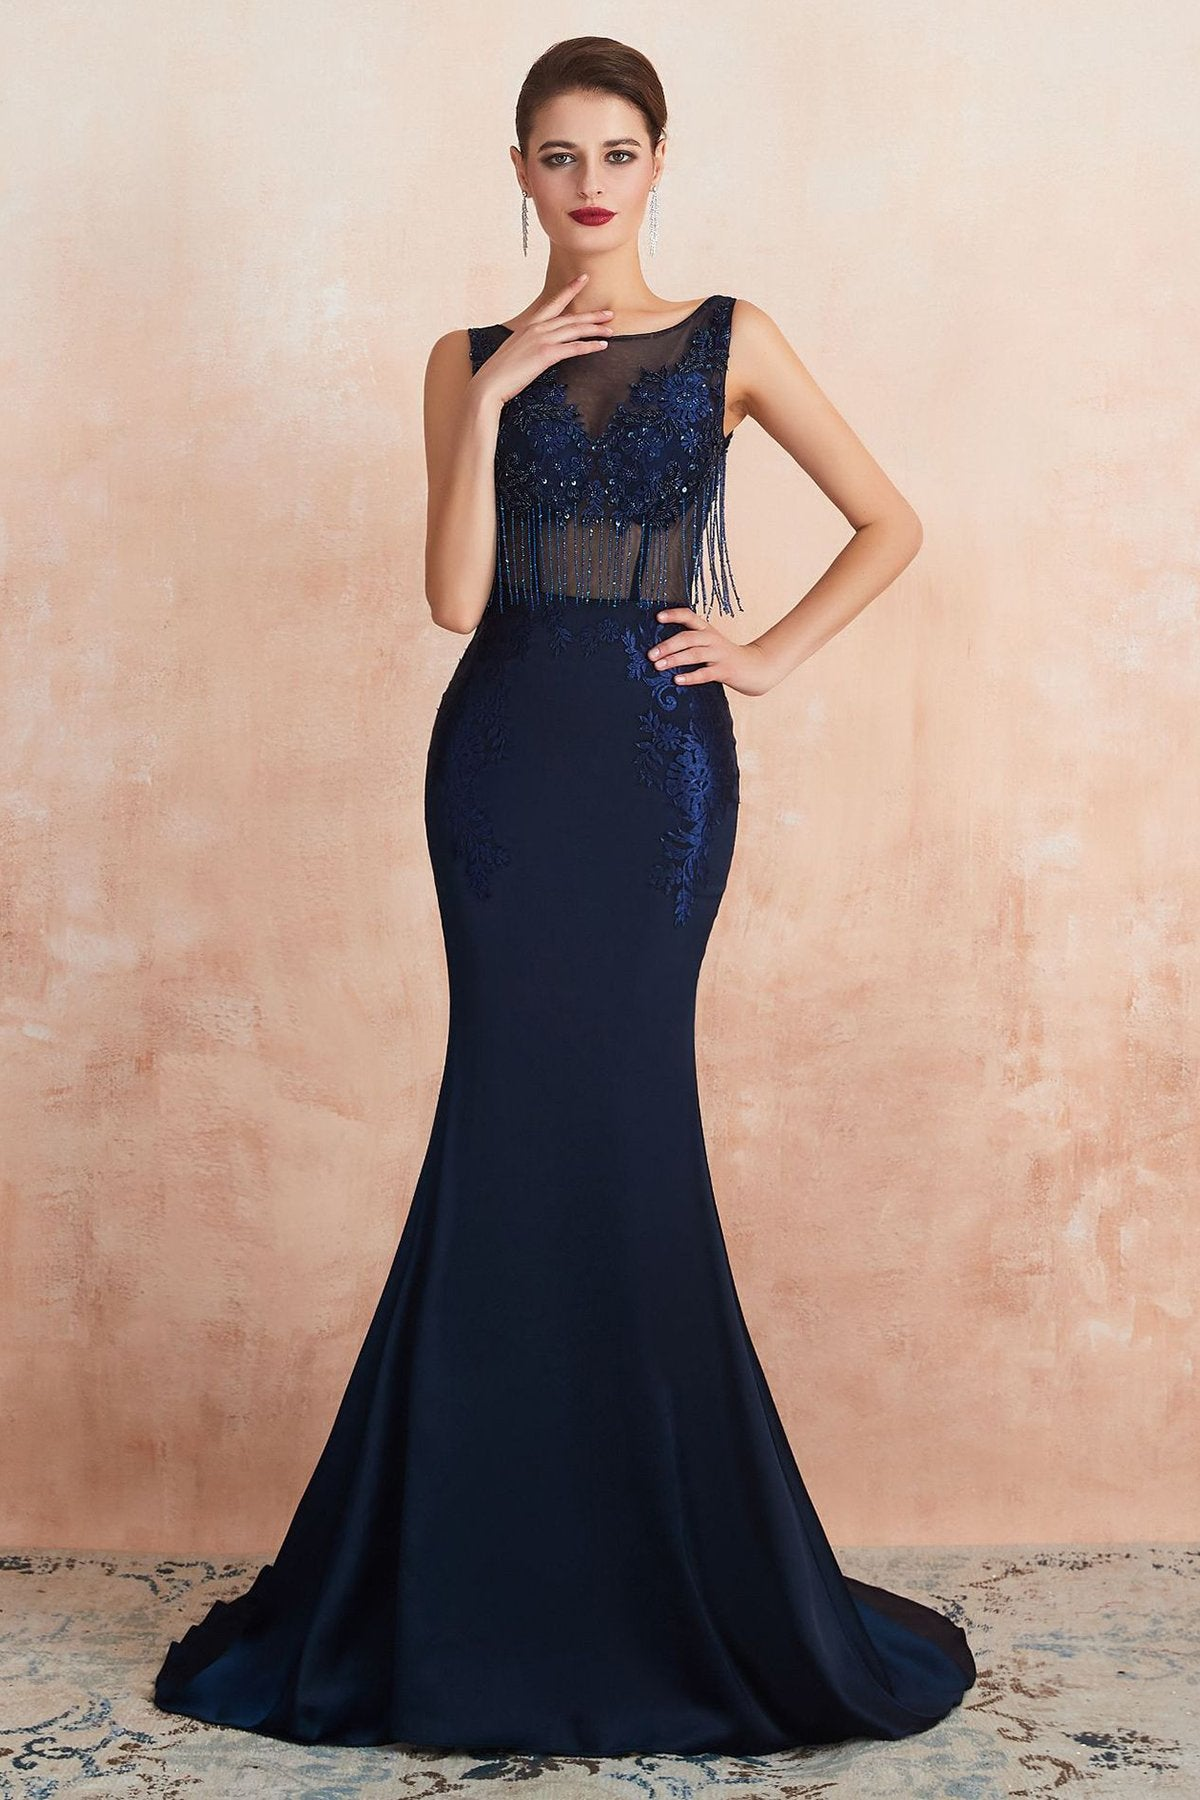 V-Back Sexy Fringe Navy Blue Evening Dress Evening Dresses US2 Navy Blue